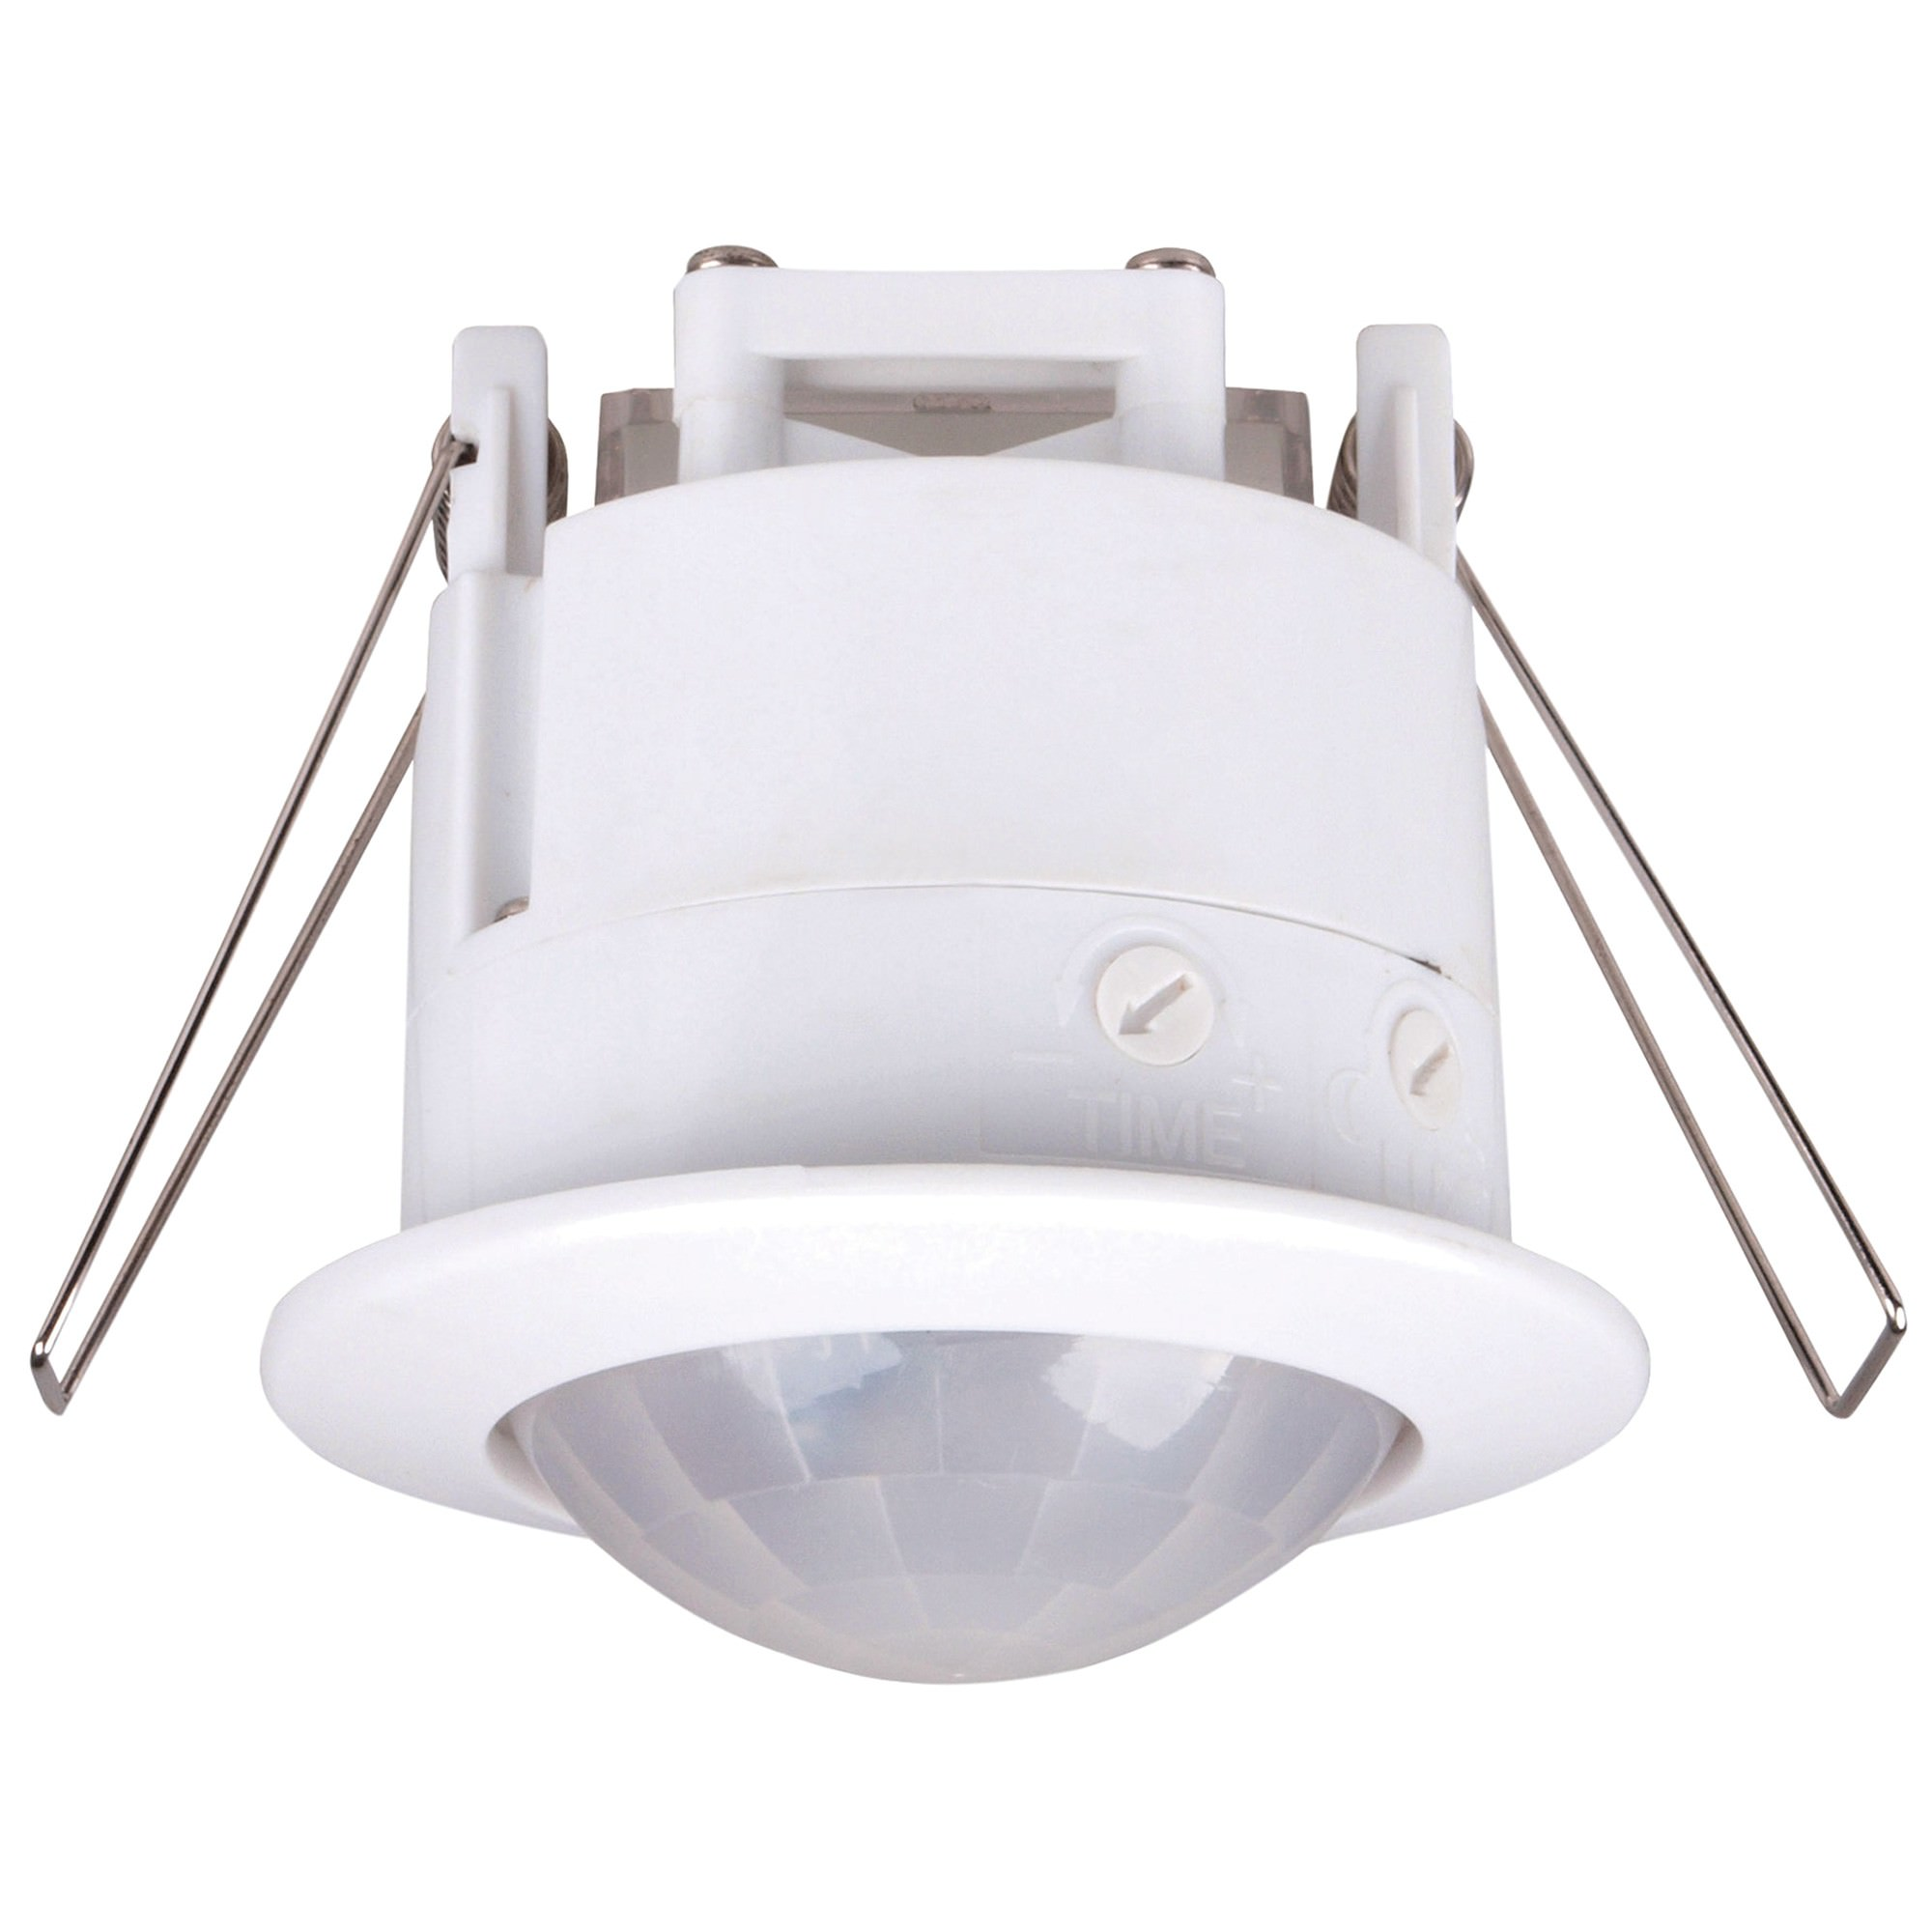 Lightwatch Recessed Ceiling Mount Motion Sensor, White